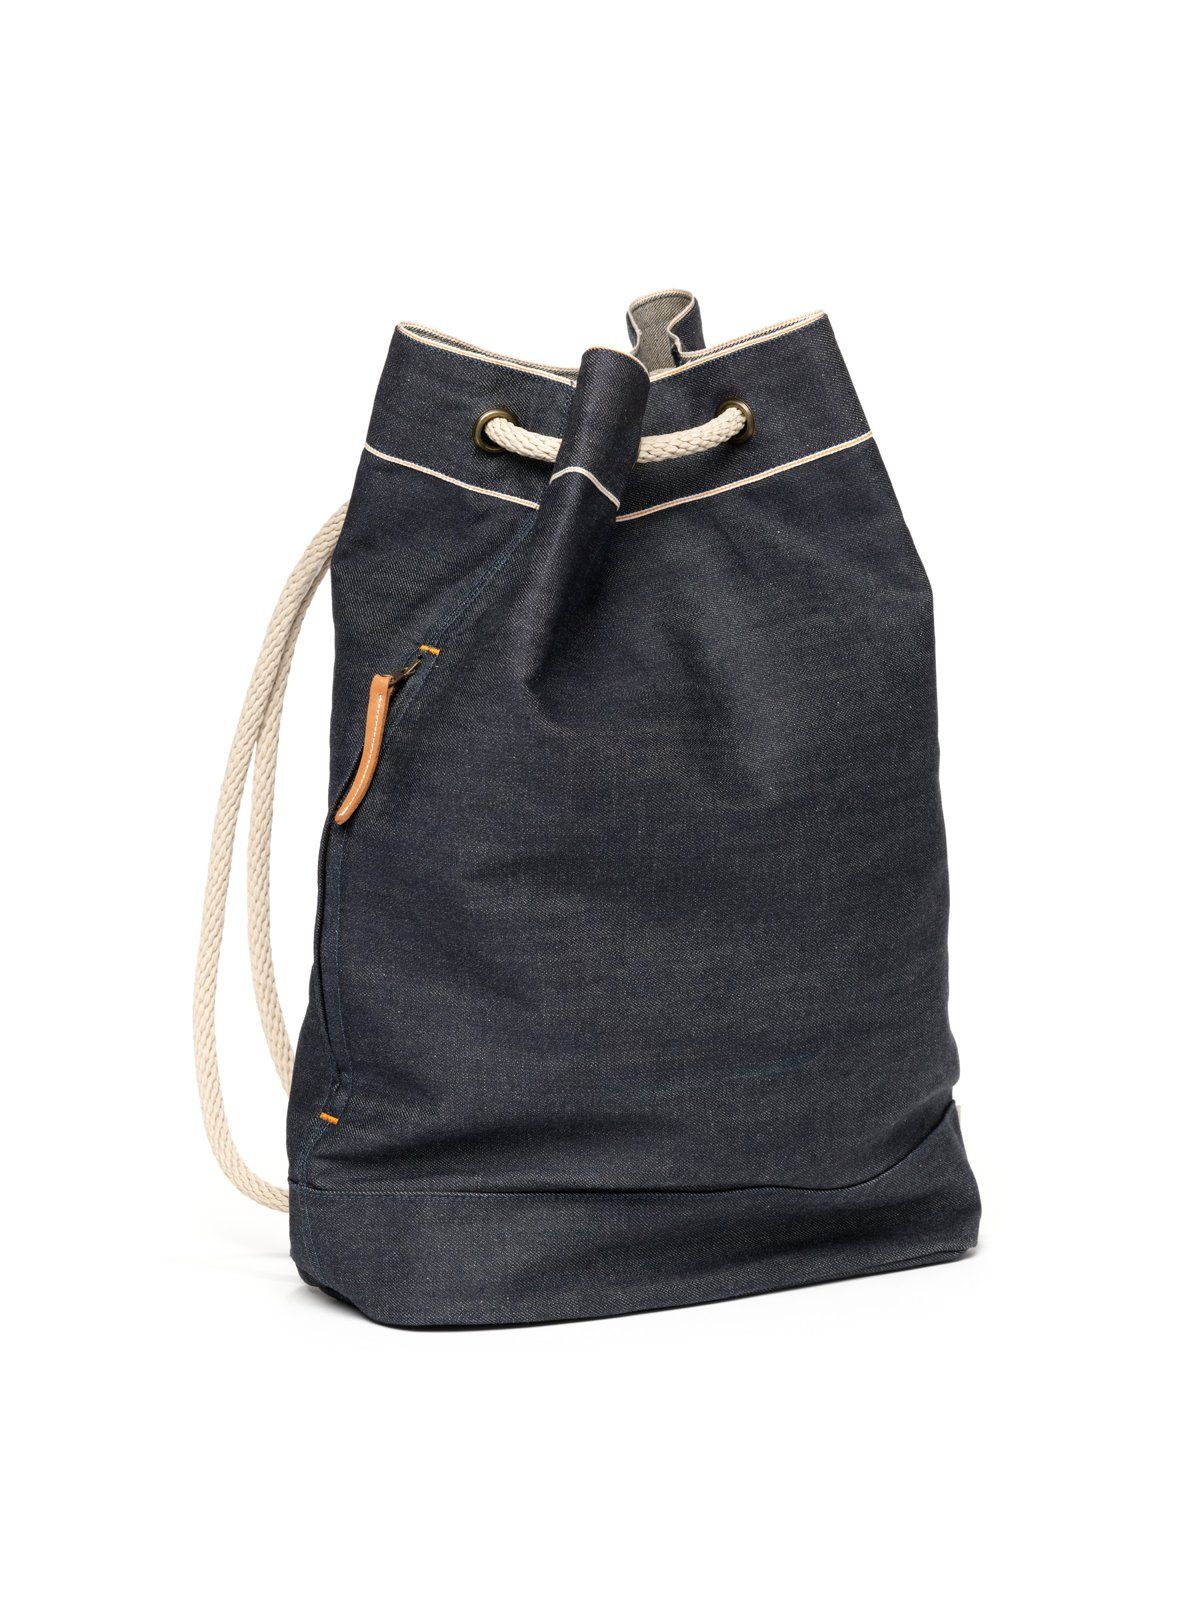 Nudie Jeans, Abbesson Ditty Bag